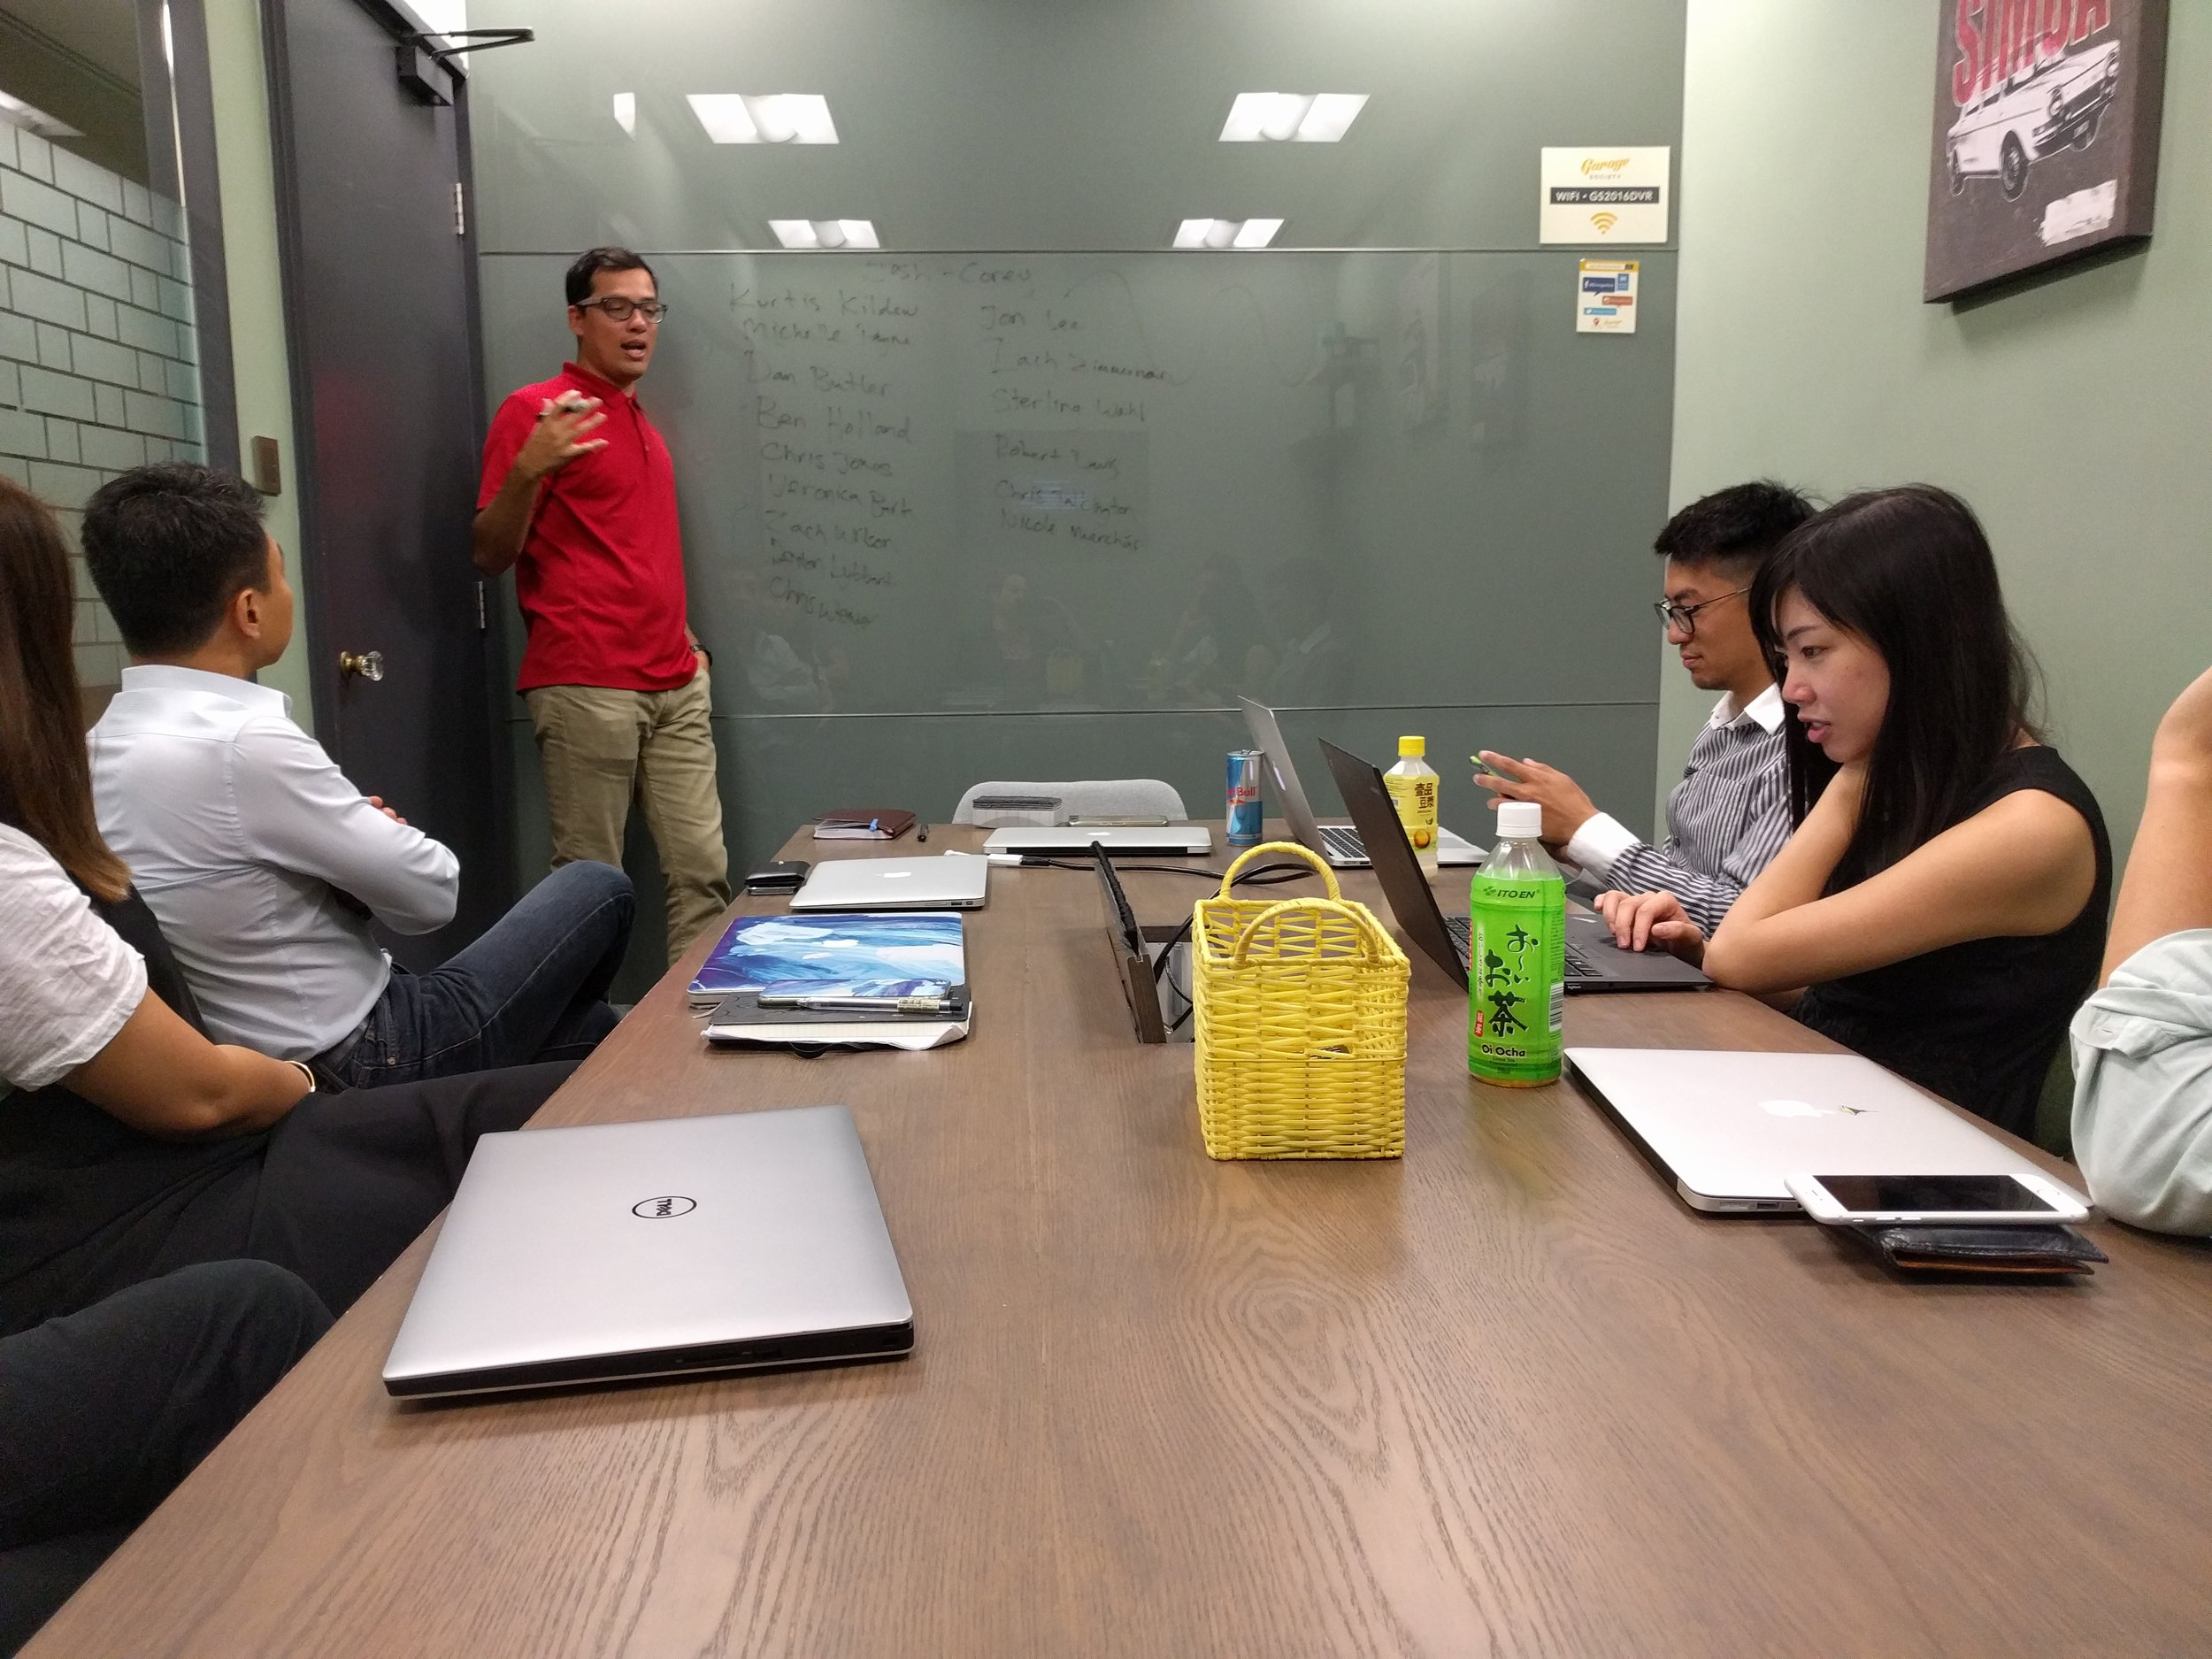 Staff at Josh Steimle's MWI Marketing agency at work in China  (Image: supplied)